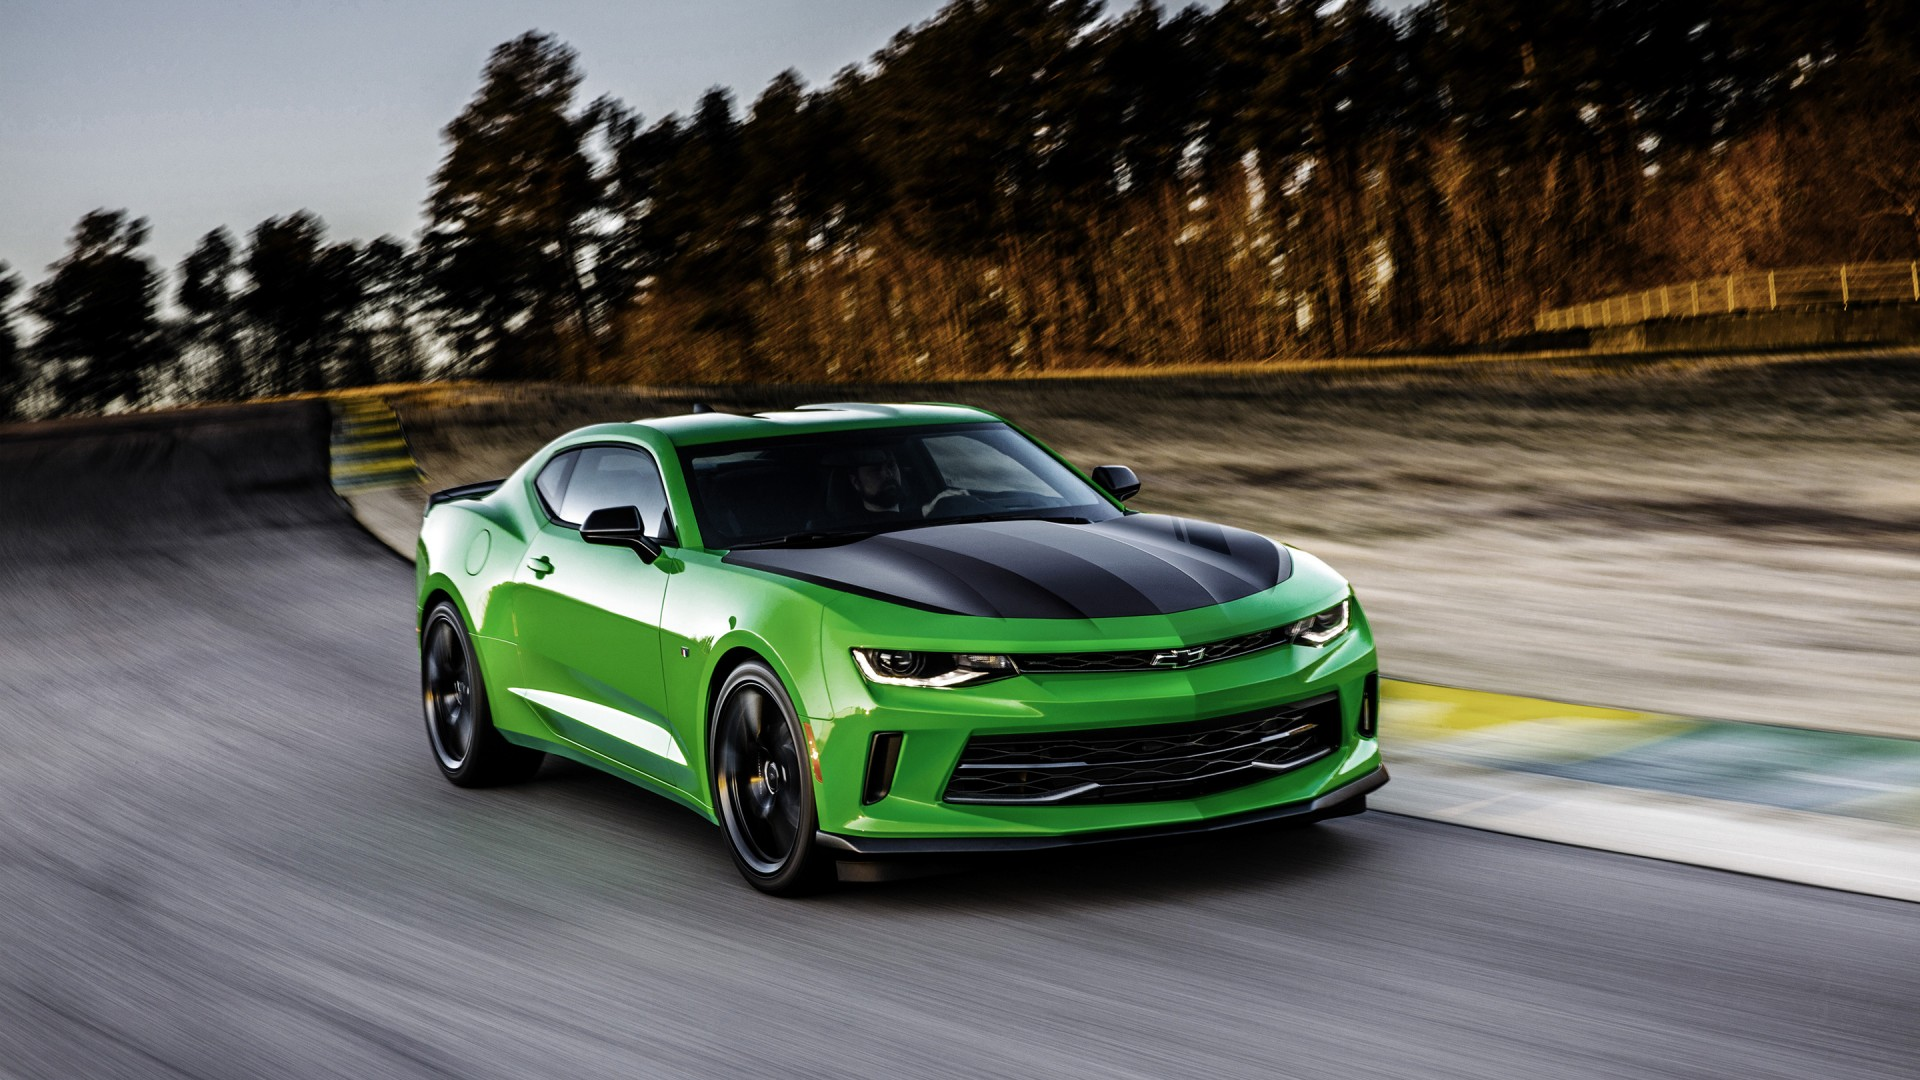 2017 Chevrolet Camaro 1LE Wallpaper | HD Car Wallpapers | ID #7045